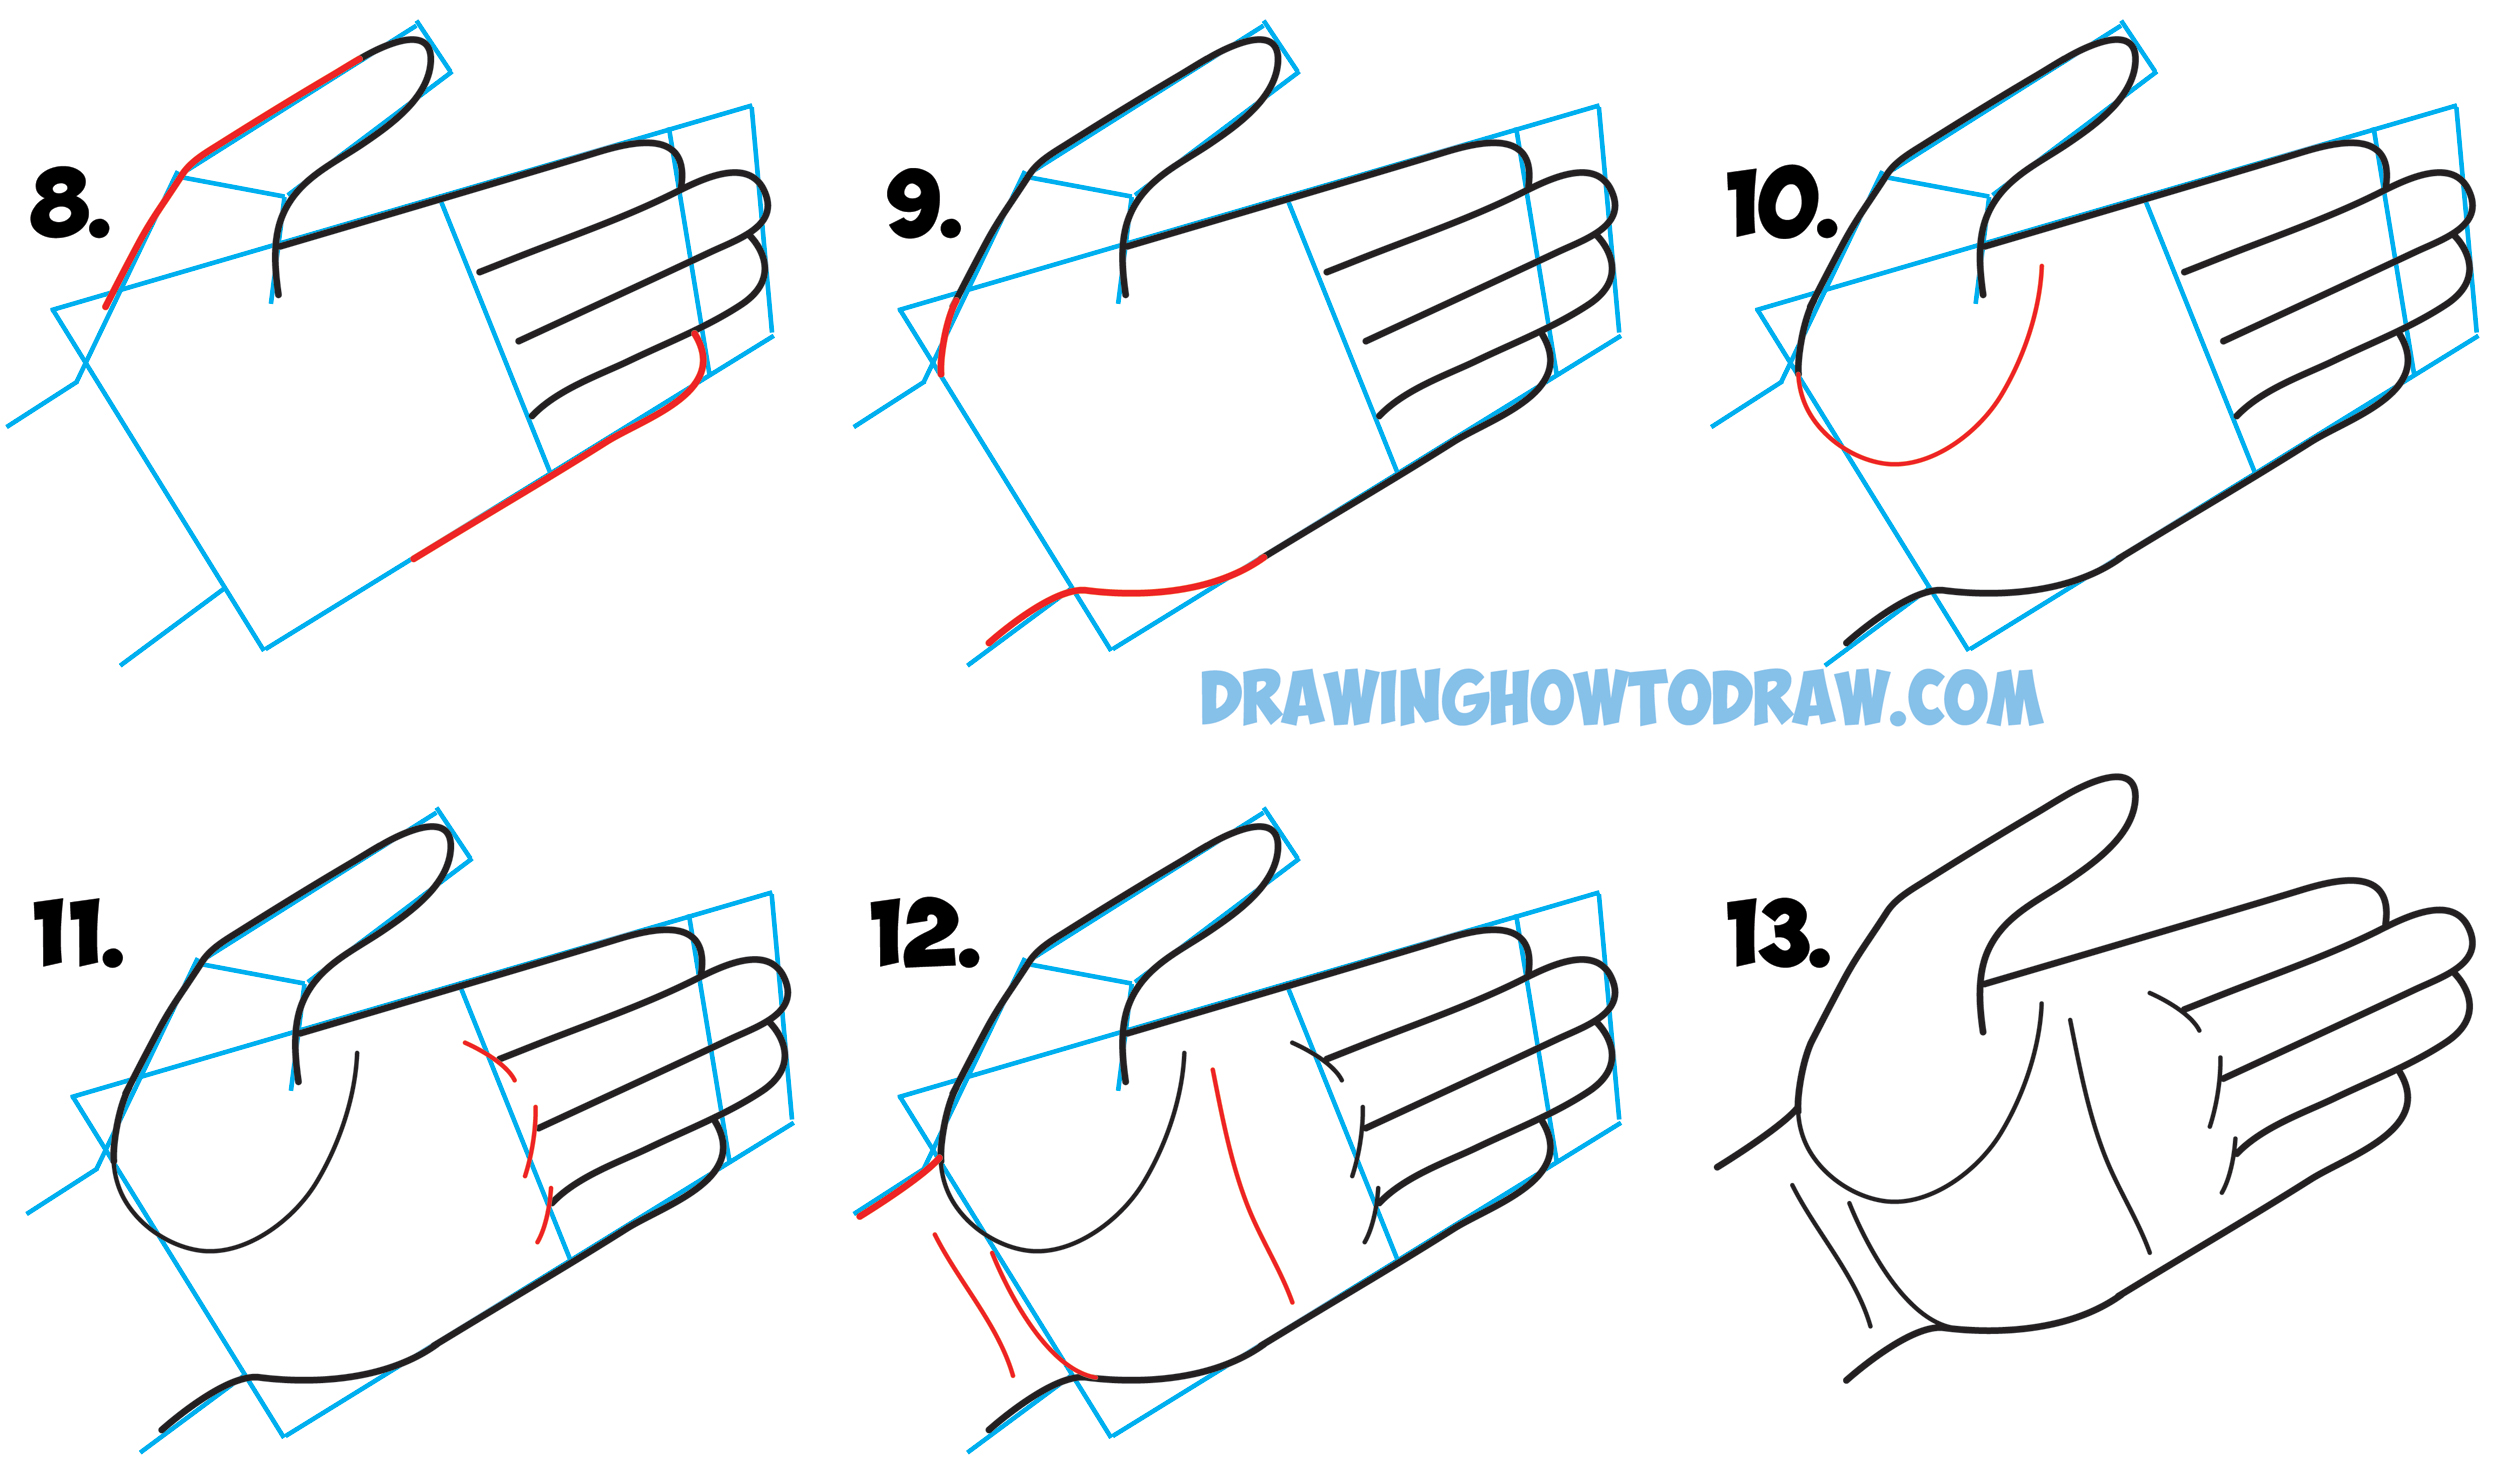 How to draw hands open palm drawing cartoon open palmed for Learn drawing online step by step